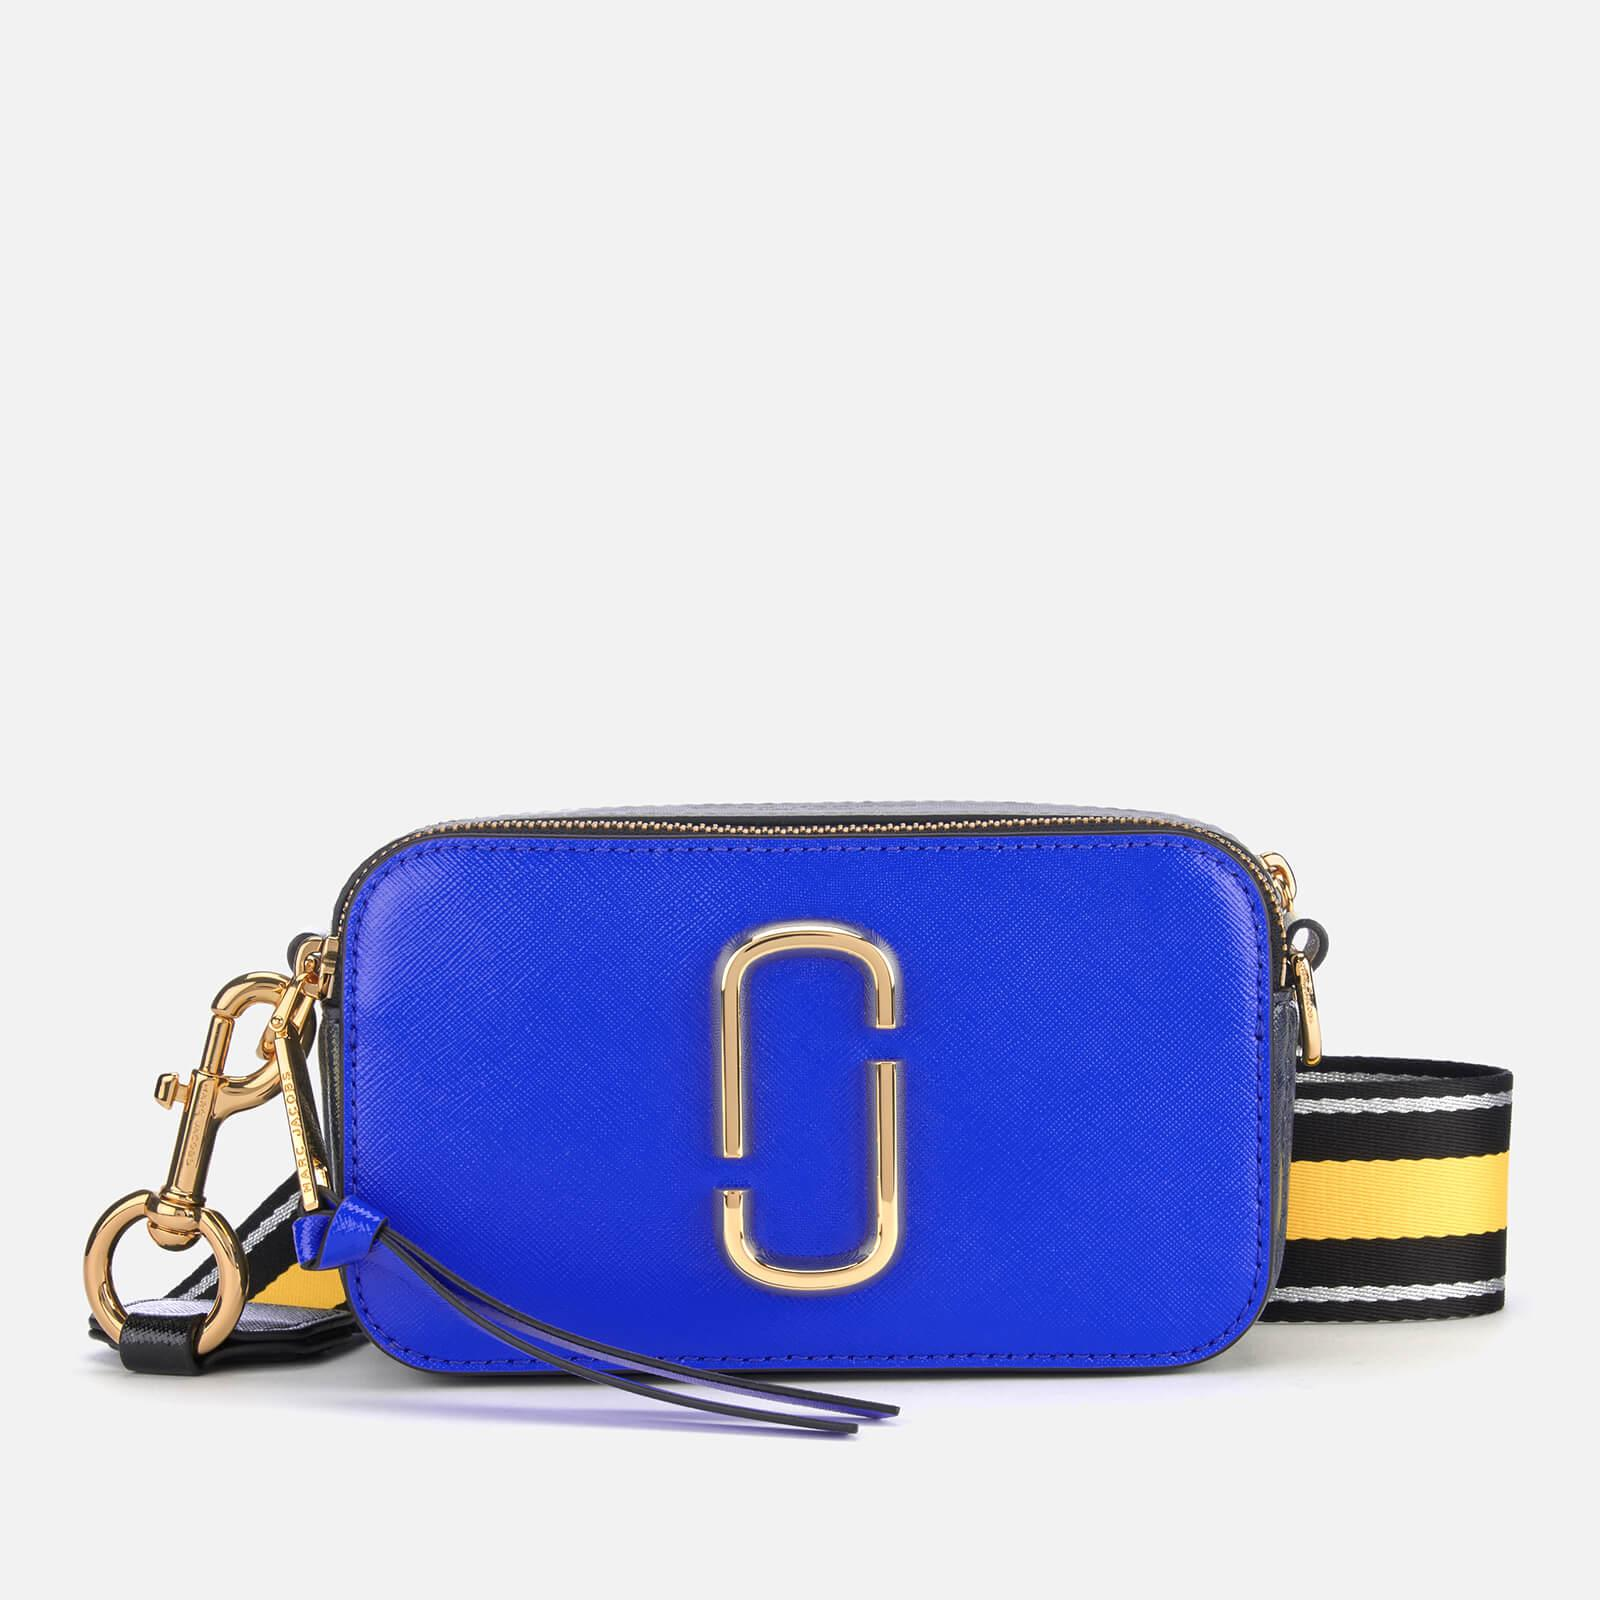 51147cd39a4 Marc Jacobs Snapshot Cross Body Bag in Blue - Save 45% - Lyst